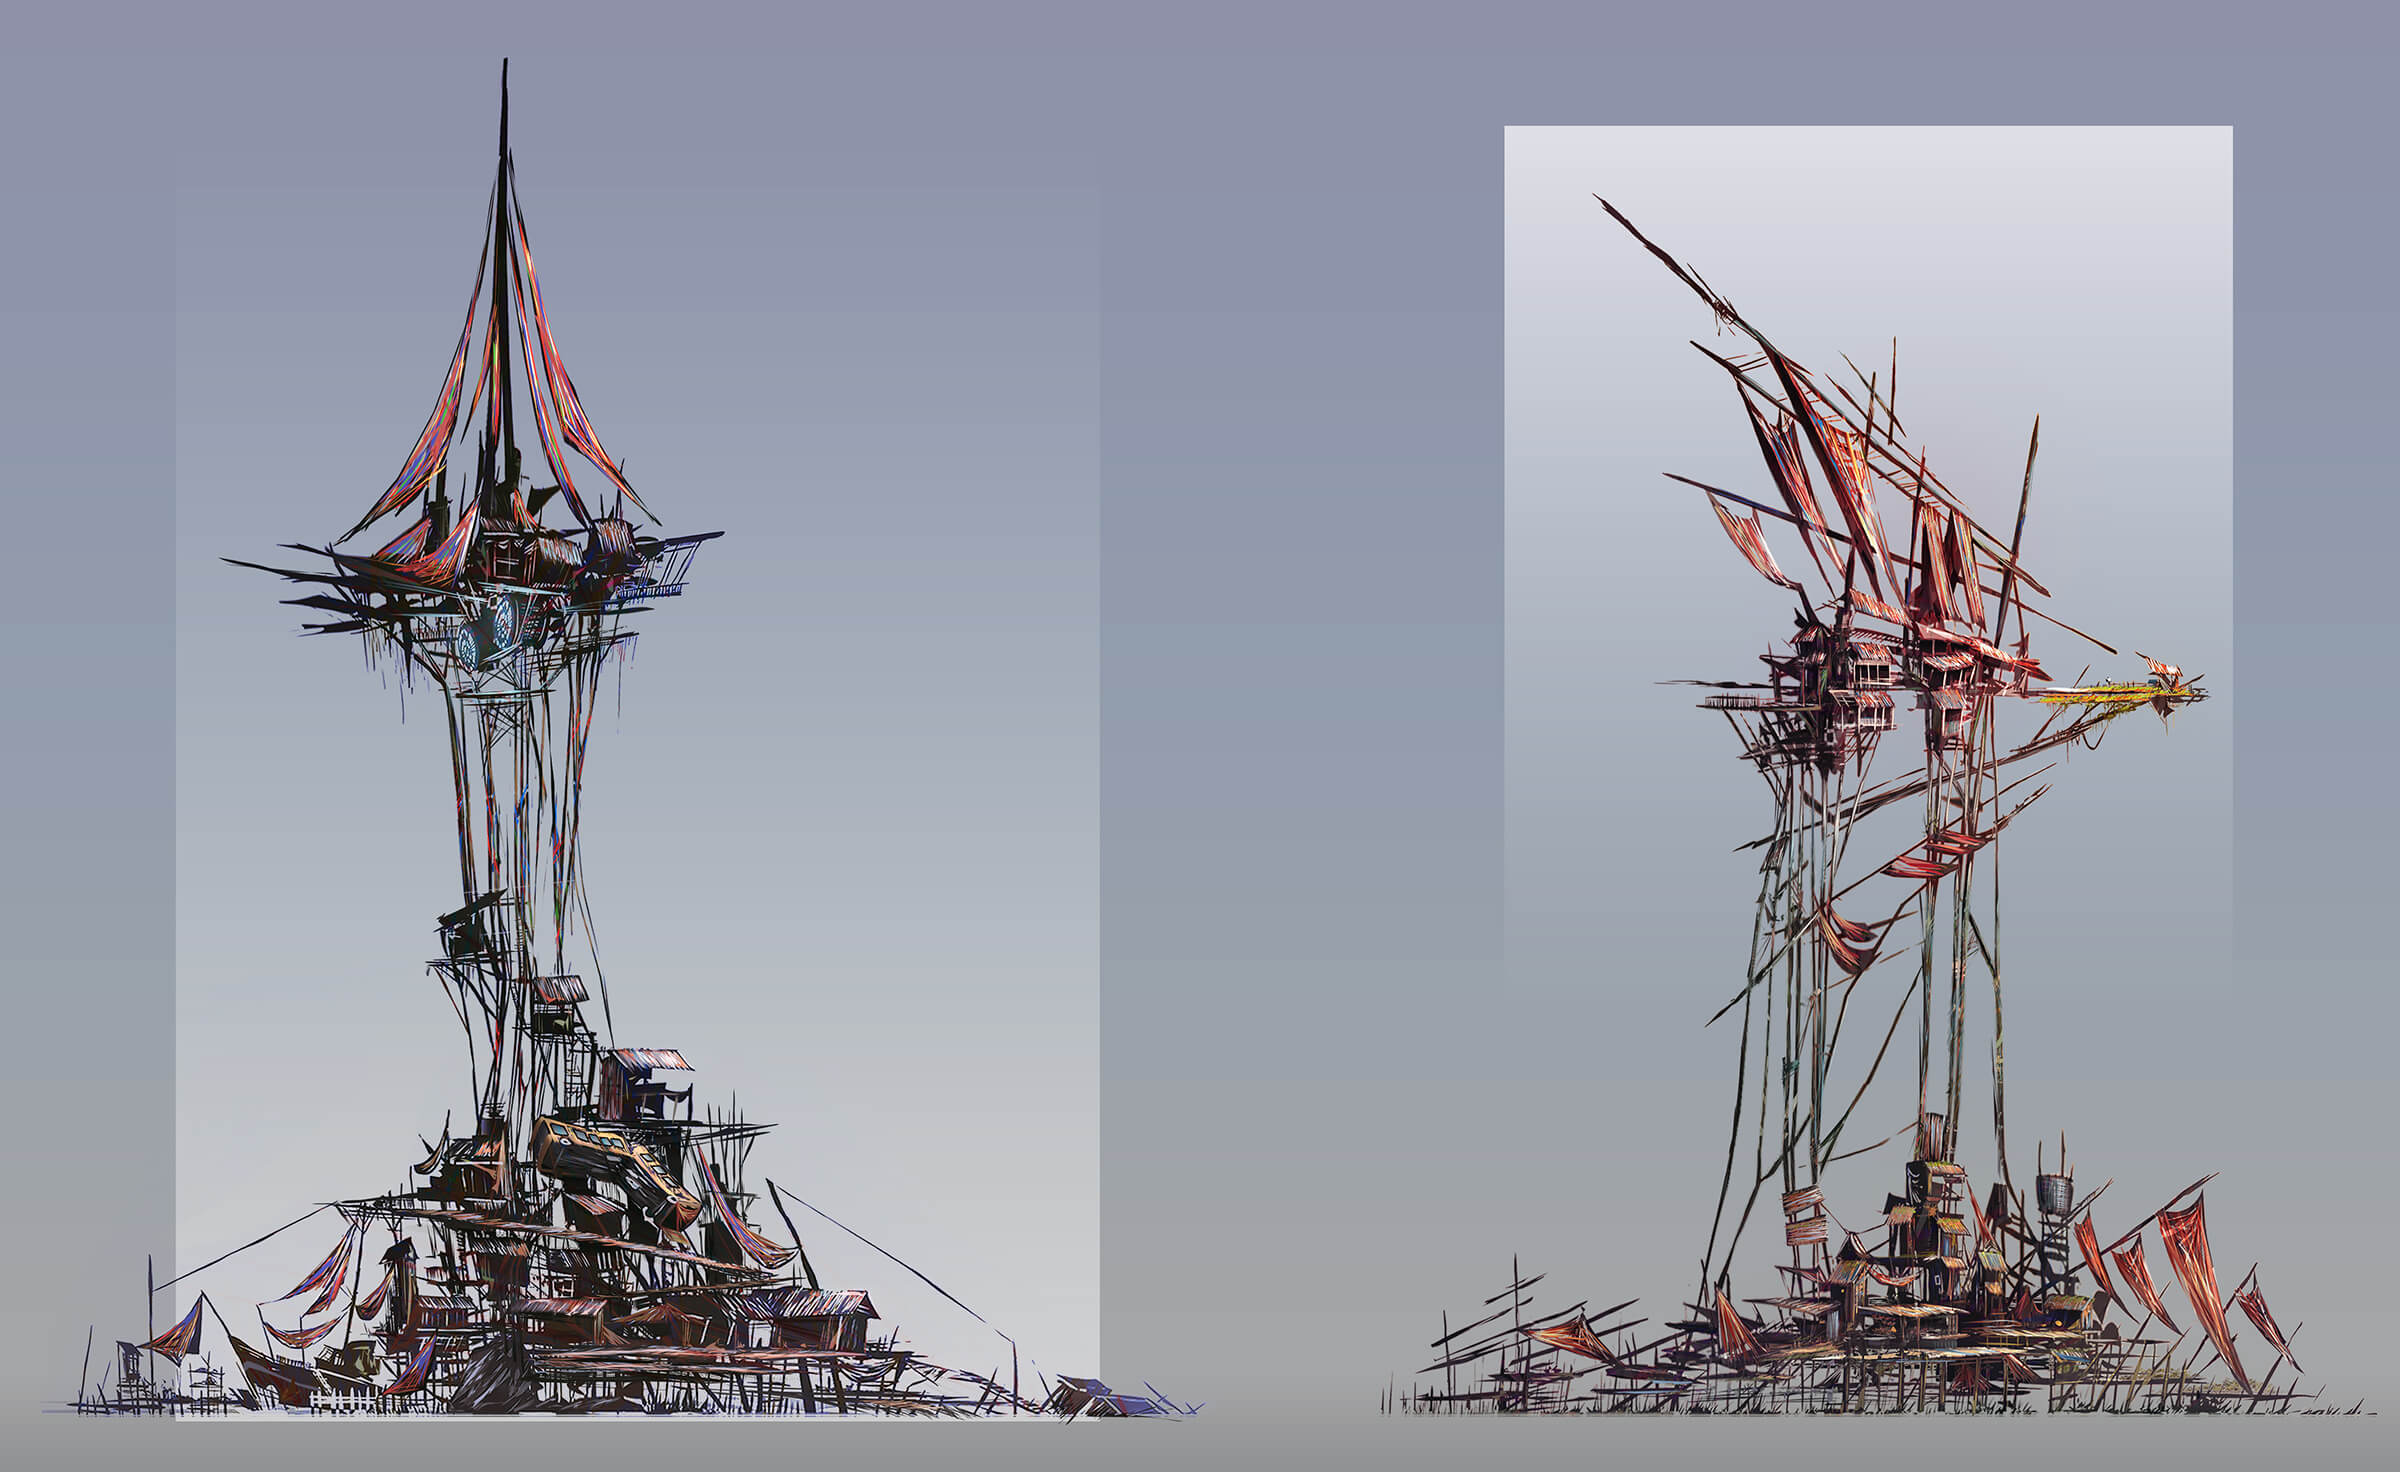 Buildings built on top of spindly branches attached to other buildings